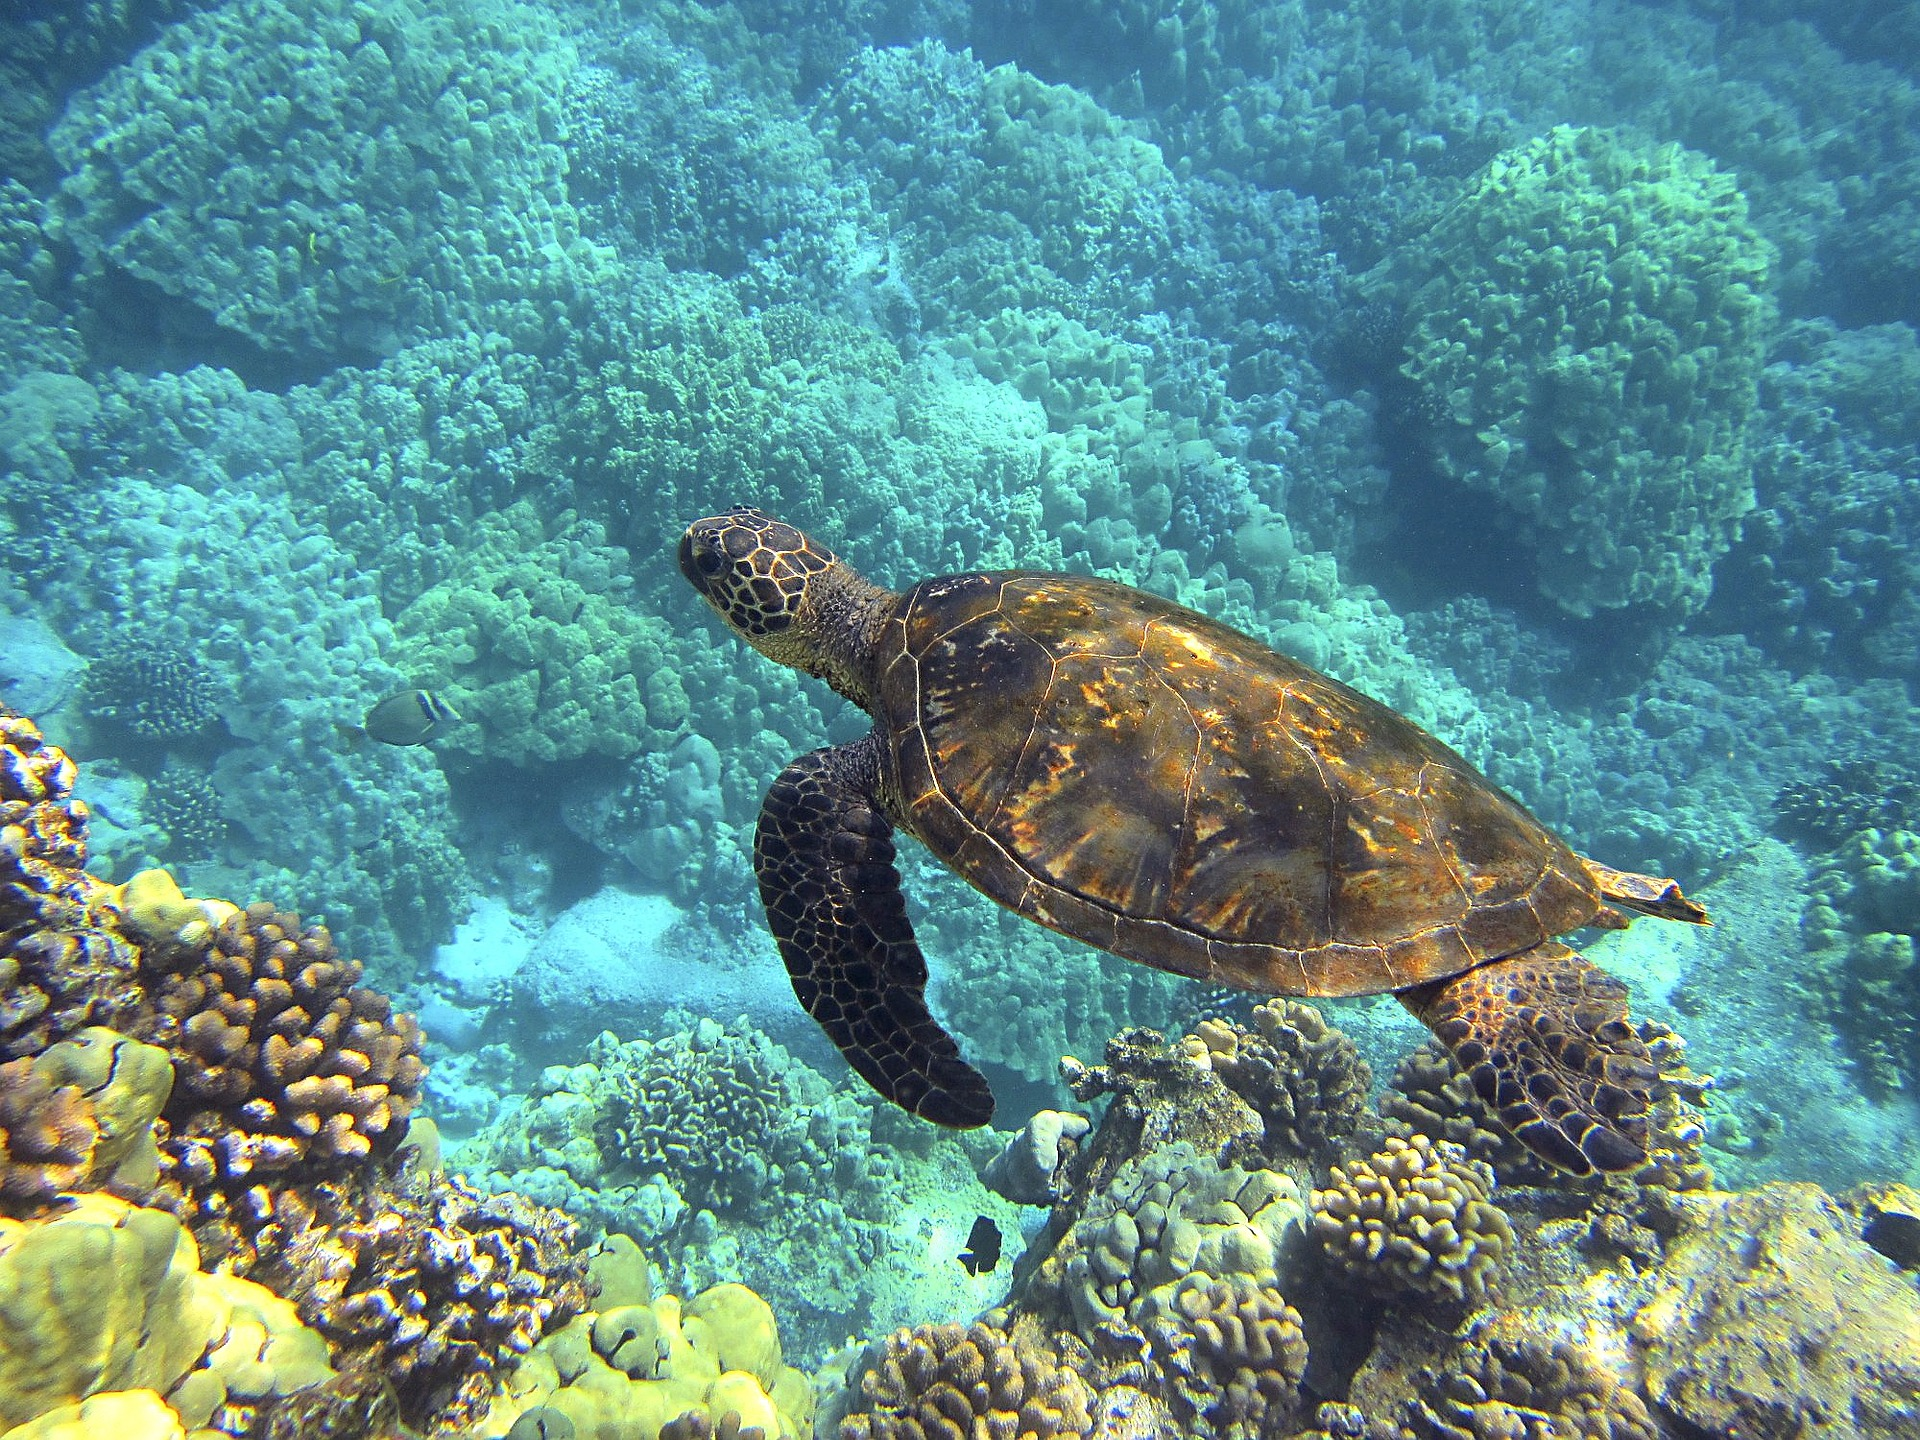 Turtle spotted while snorkeling